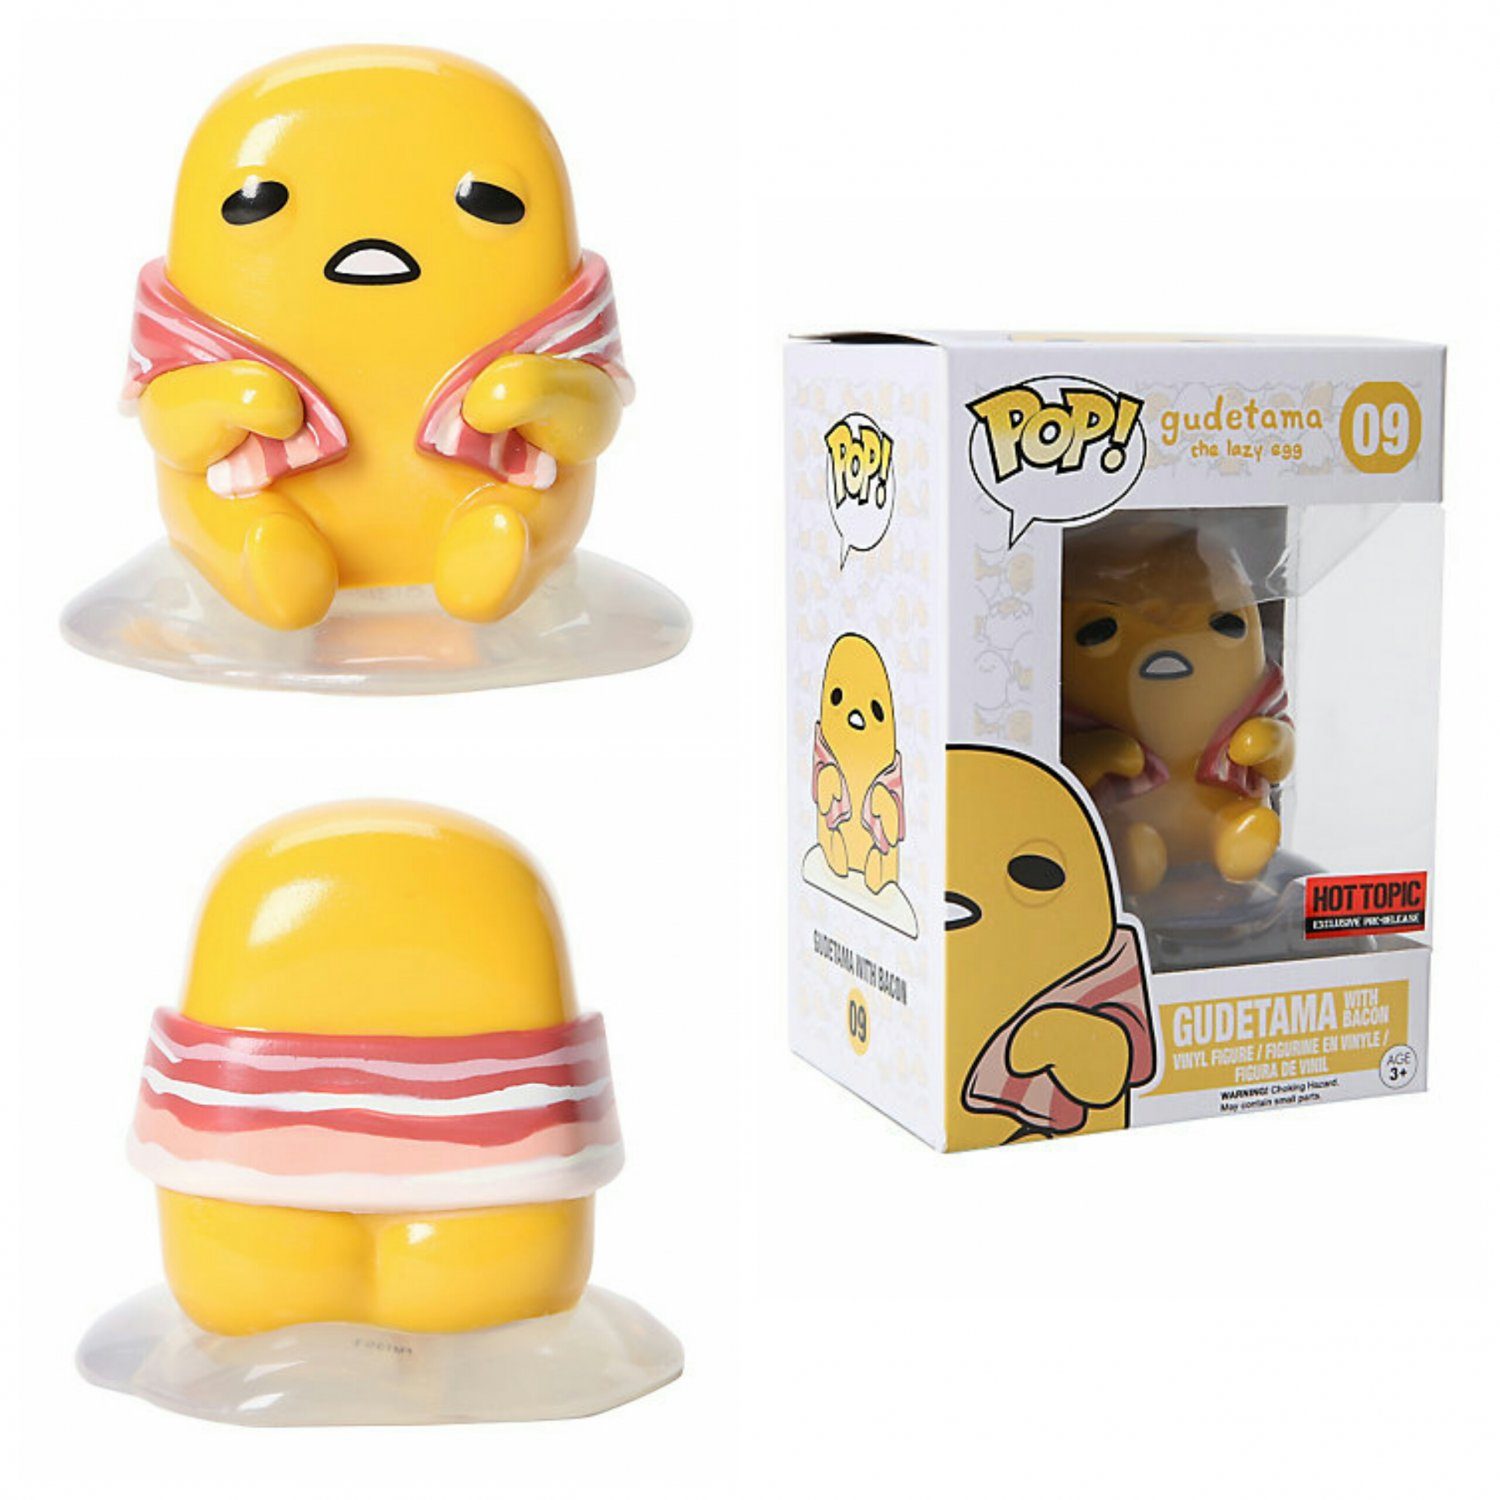 FUNKO Sanrio POP! #09 Gudetama with Bacon Collectible Vinyl Figure - Hot Topic Exclusive Pre-Release